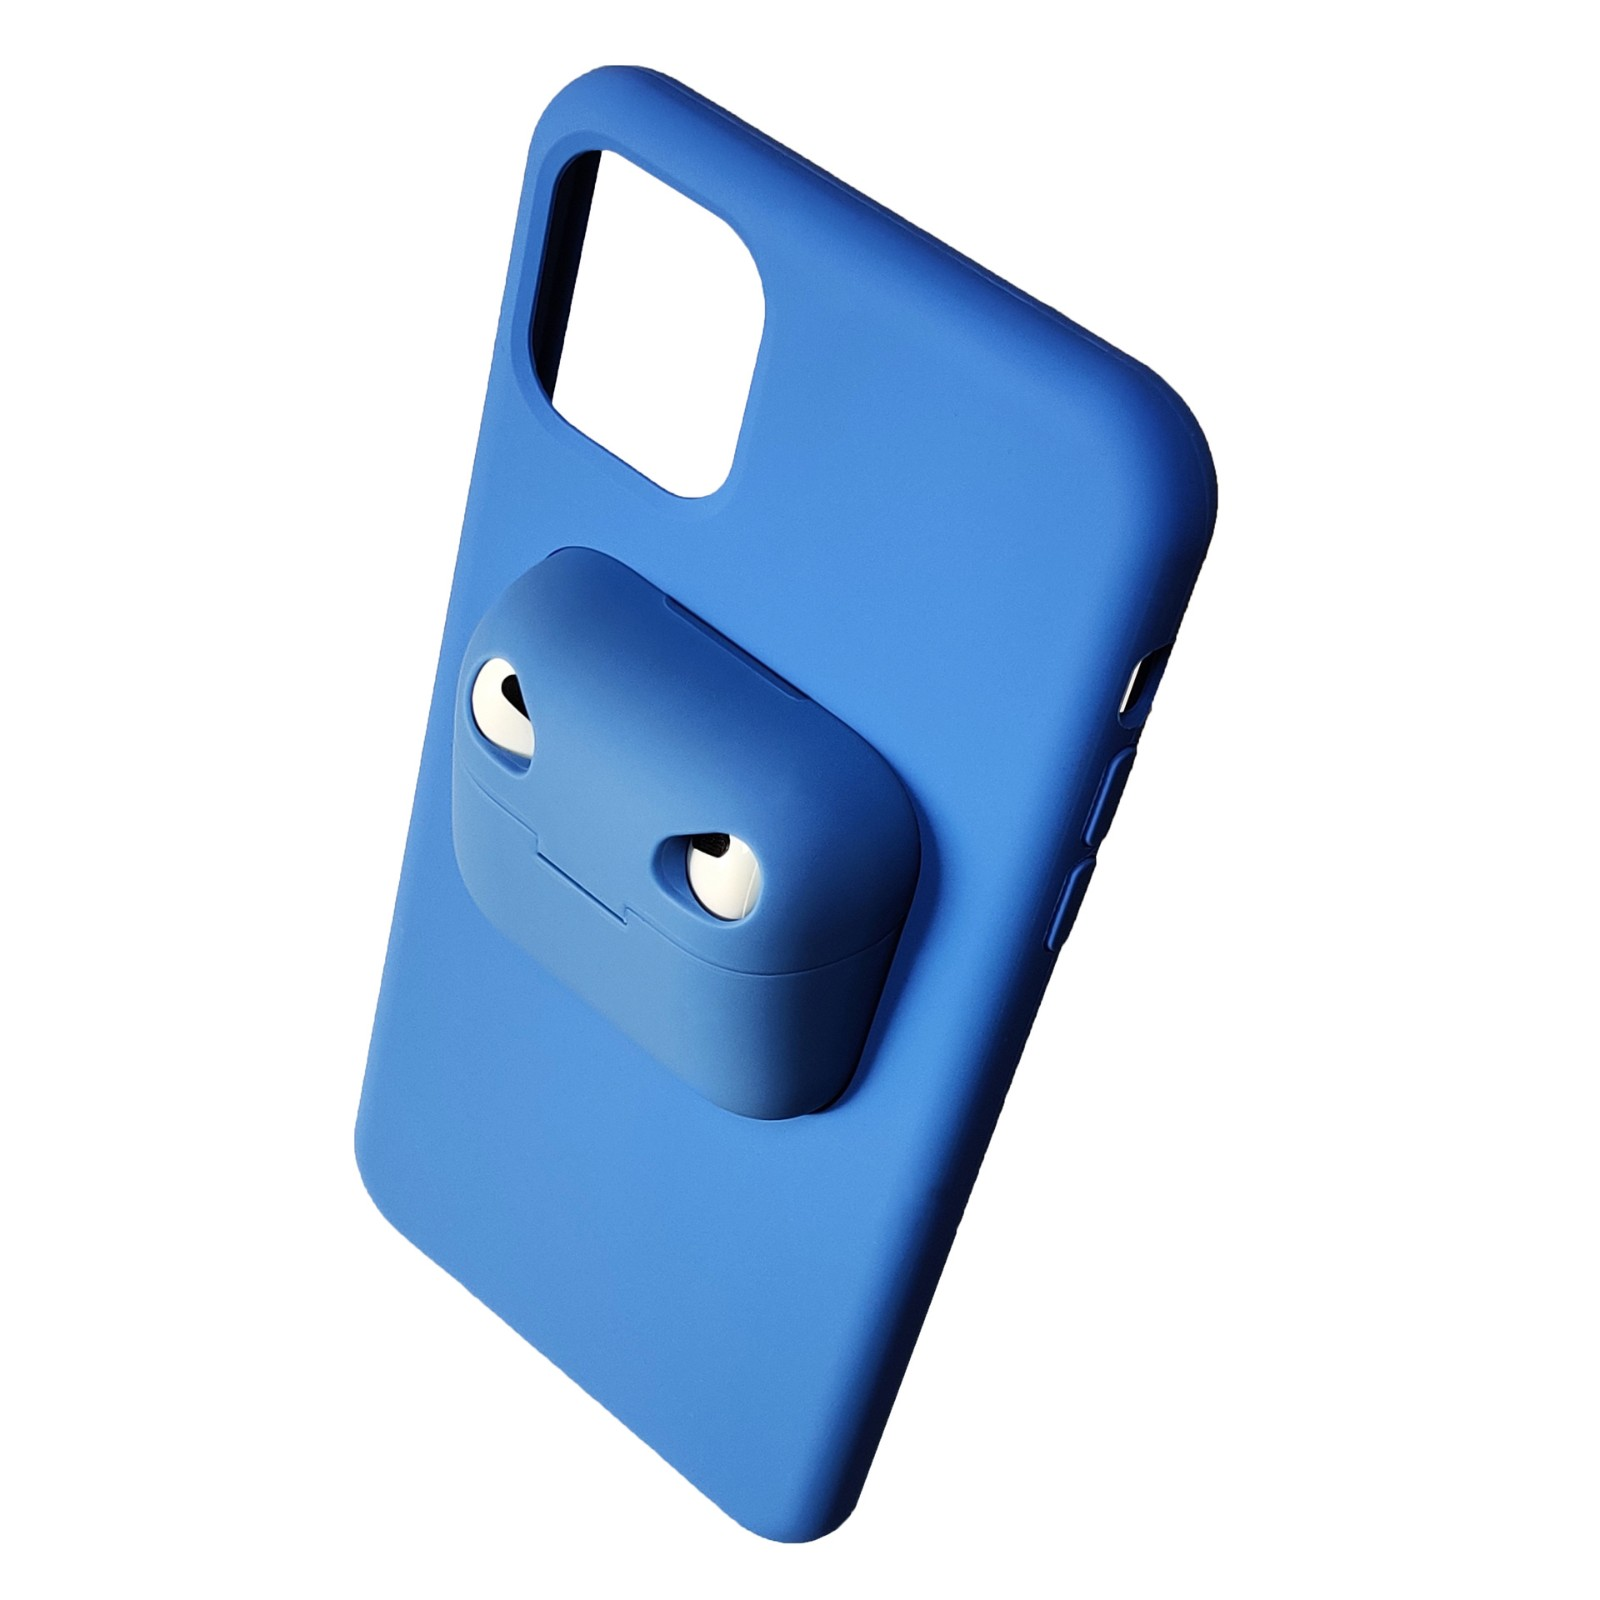 video-TENCHEN iPhone 12 Airpods Case Holder Slim Durable 2 in 1 Cover Designed for iPhone Protects -4